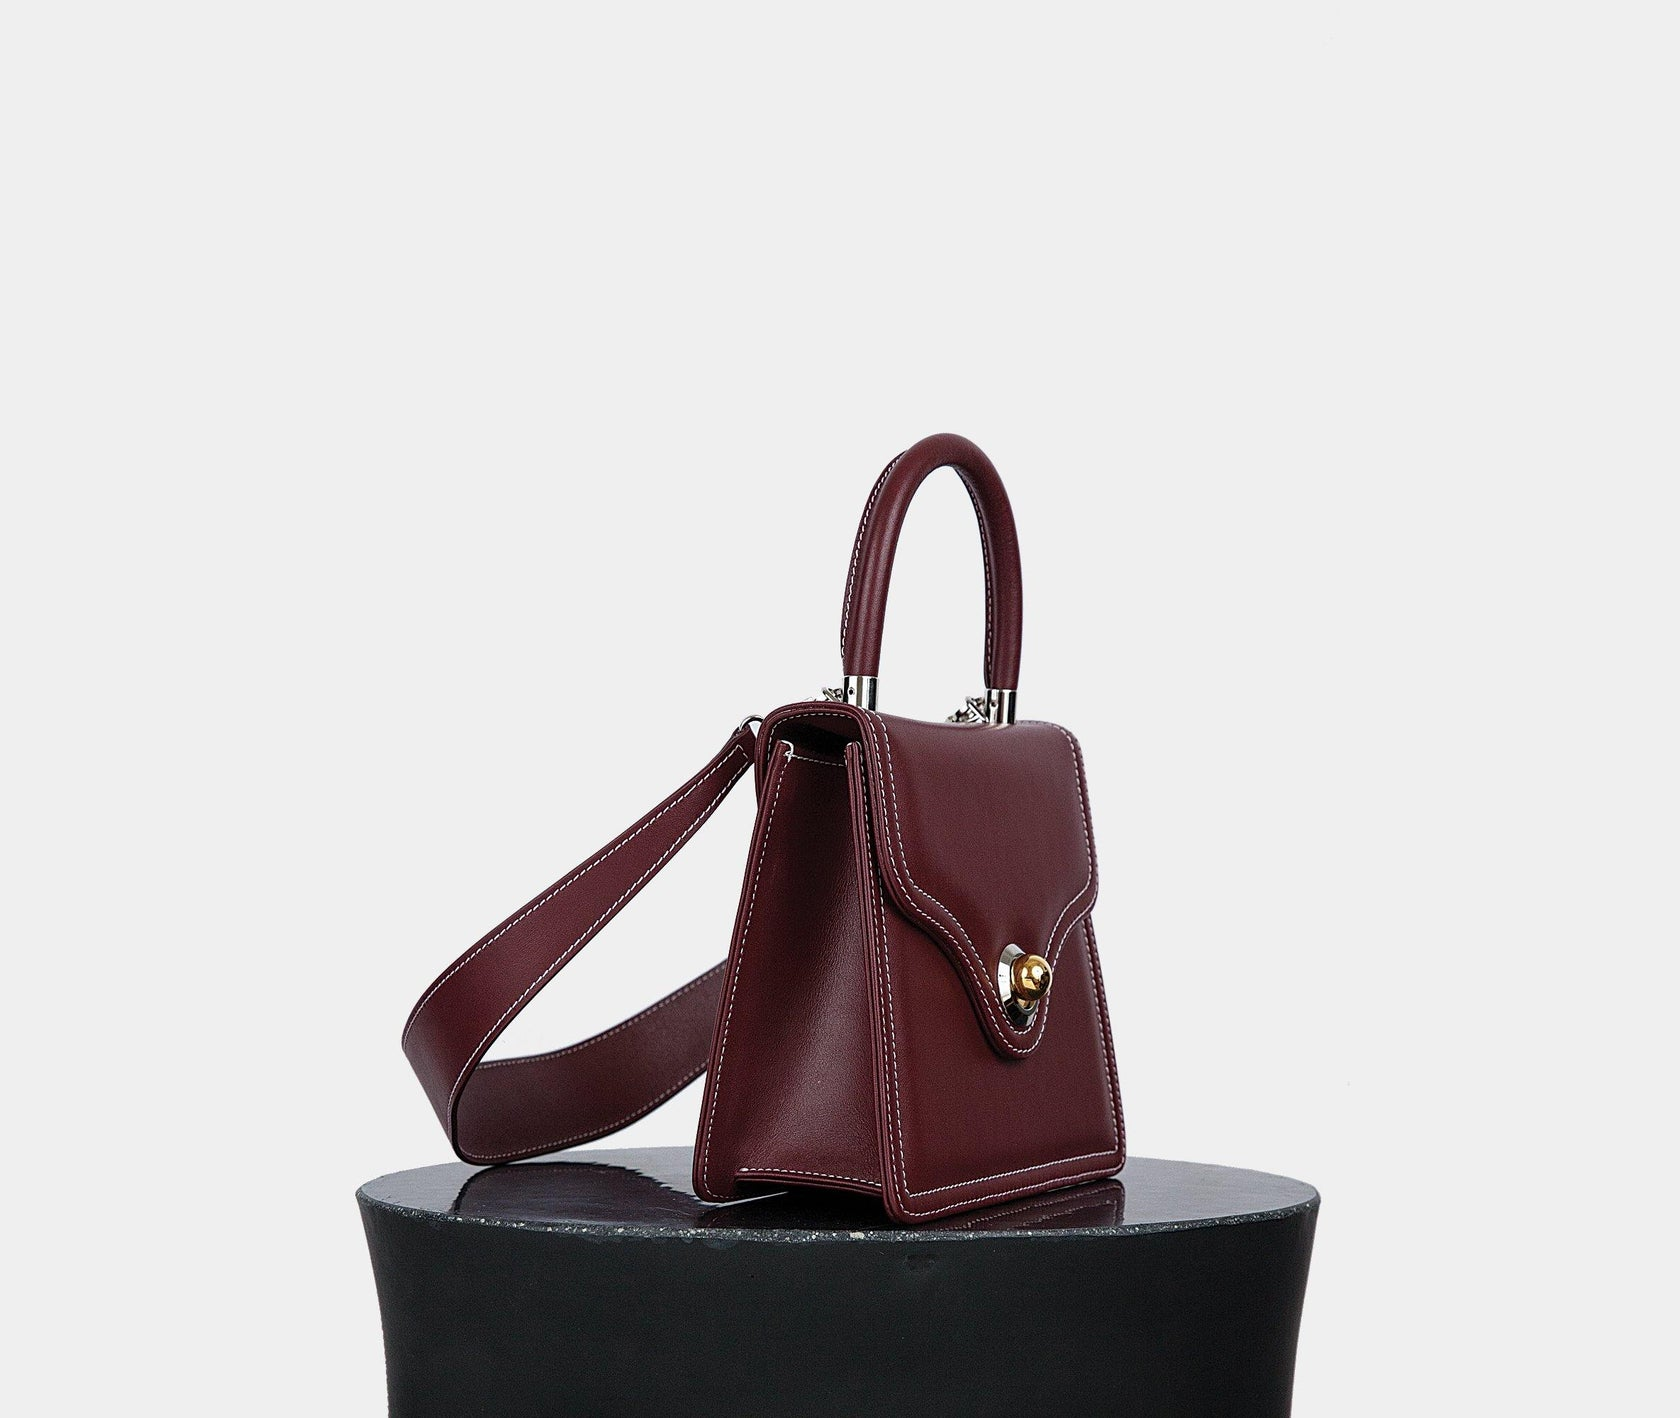 Lady Bag - Oxblood